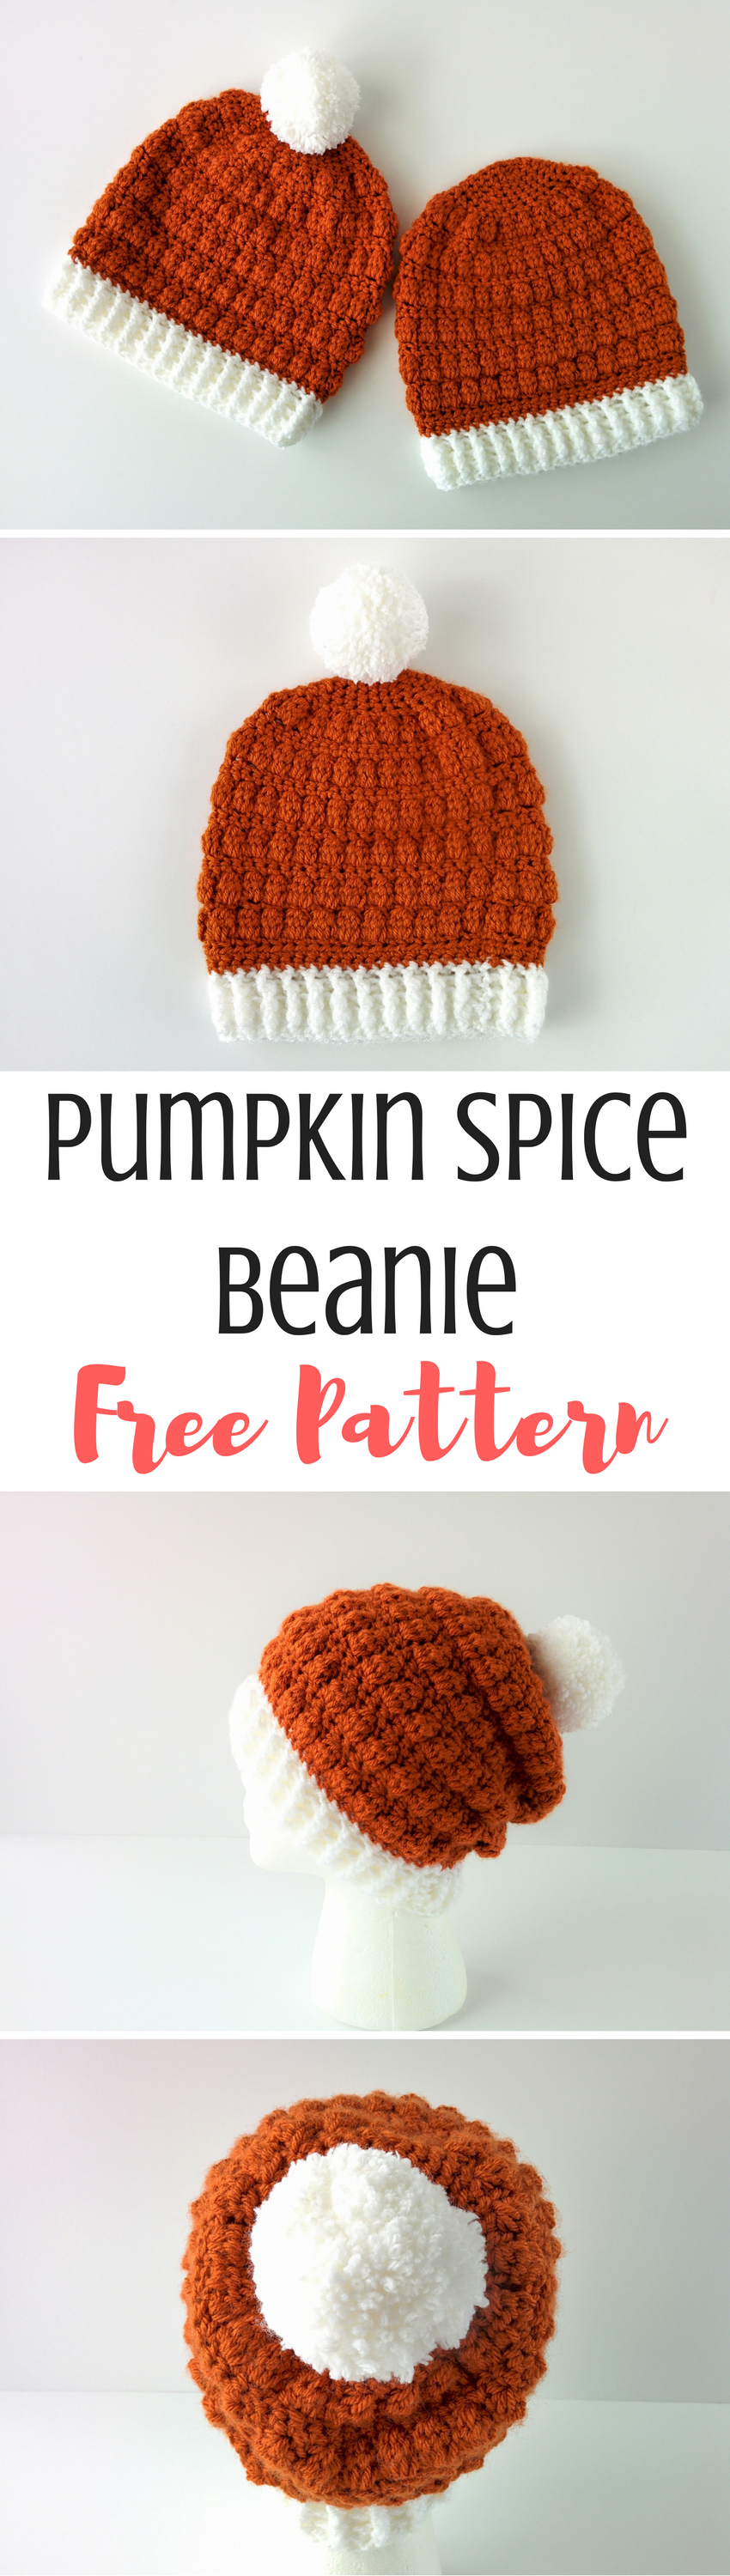 Pumpkin Spice Beanie: Easy Double Crochet Beanie Pattern | Crochet ...